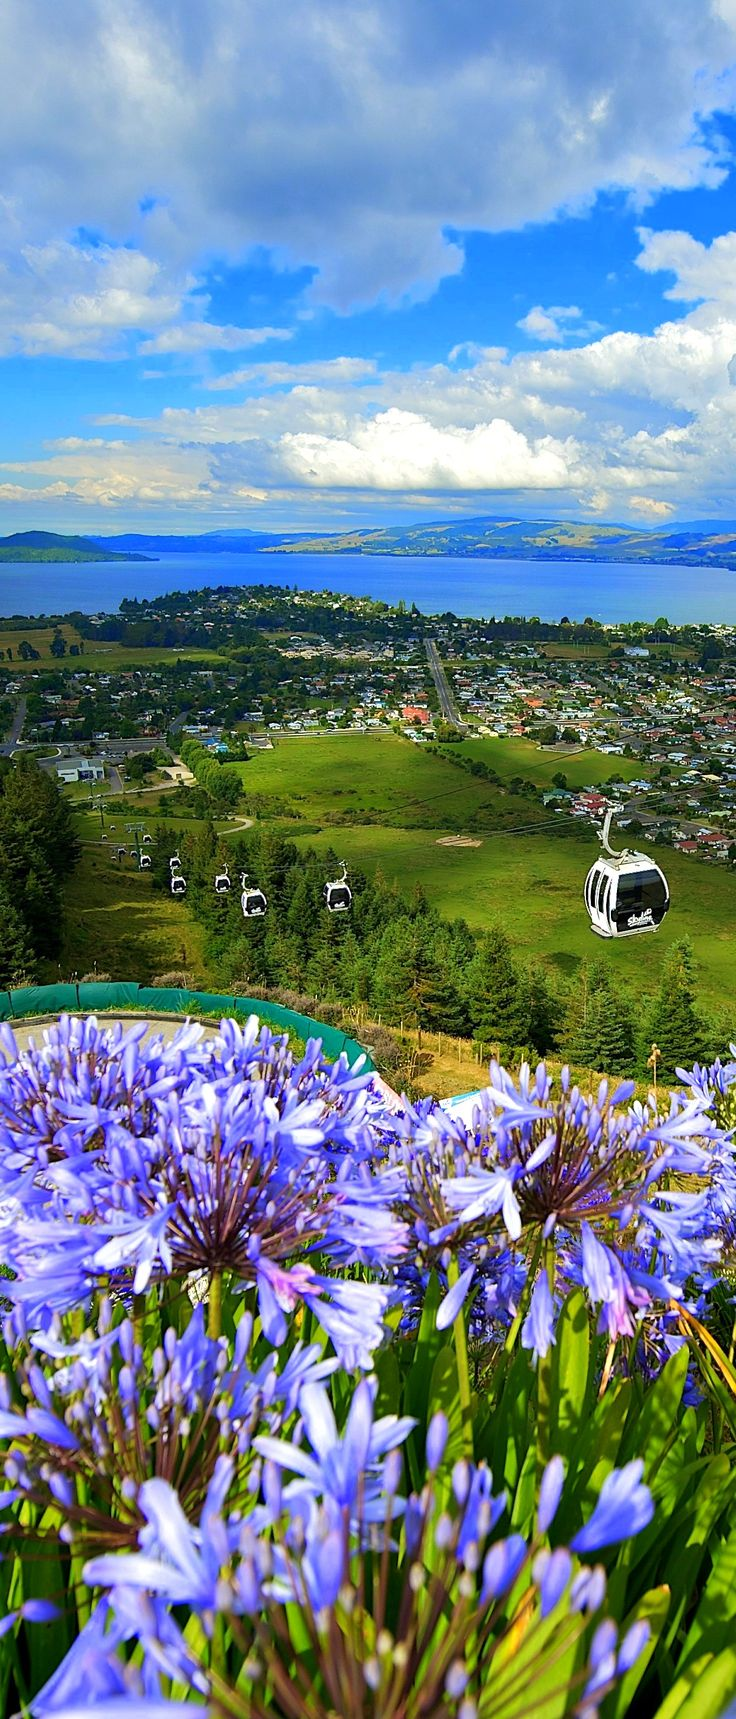 Located high on Mount Ngongotaha Skyline Rotorua offers stunning views overlooking the city and Lake Rotorua, NEW ZEALAND